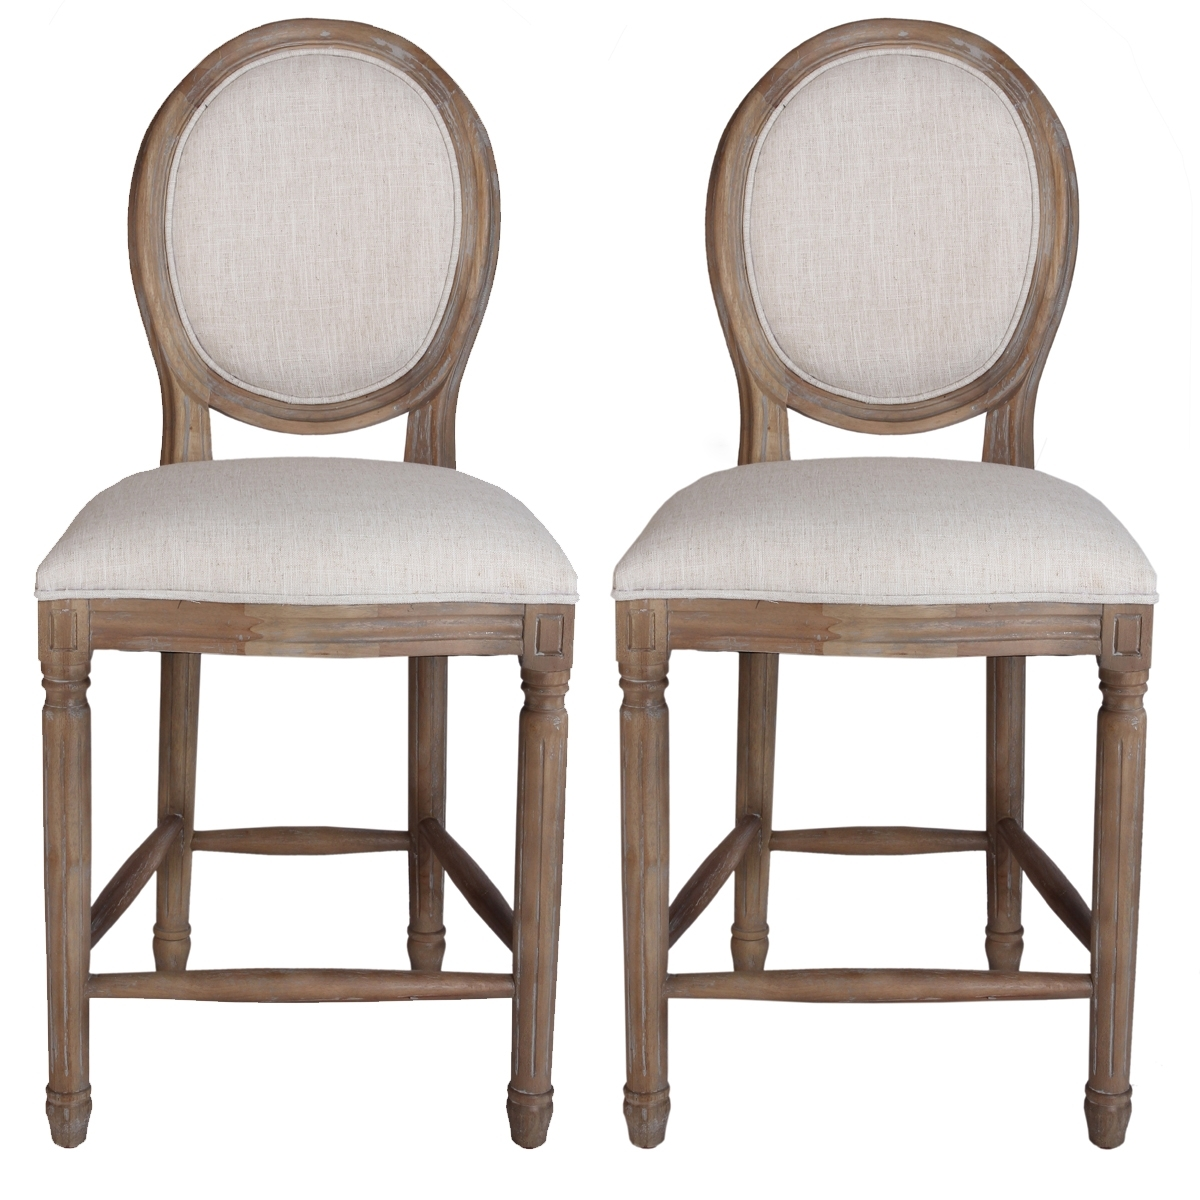 Furniture: French Country Bar Stools For Your Home Bar Or Kitchen Inside French Country Counter Stools (View 1 of 20)